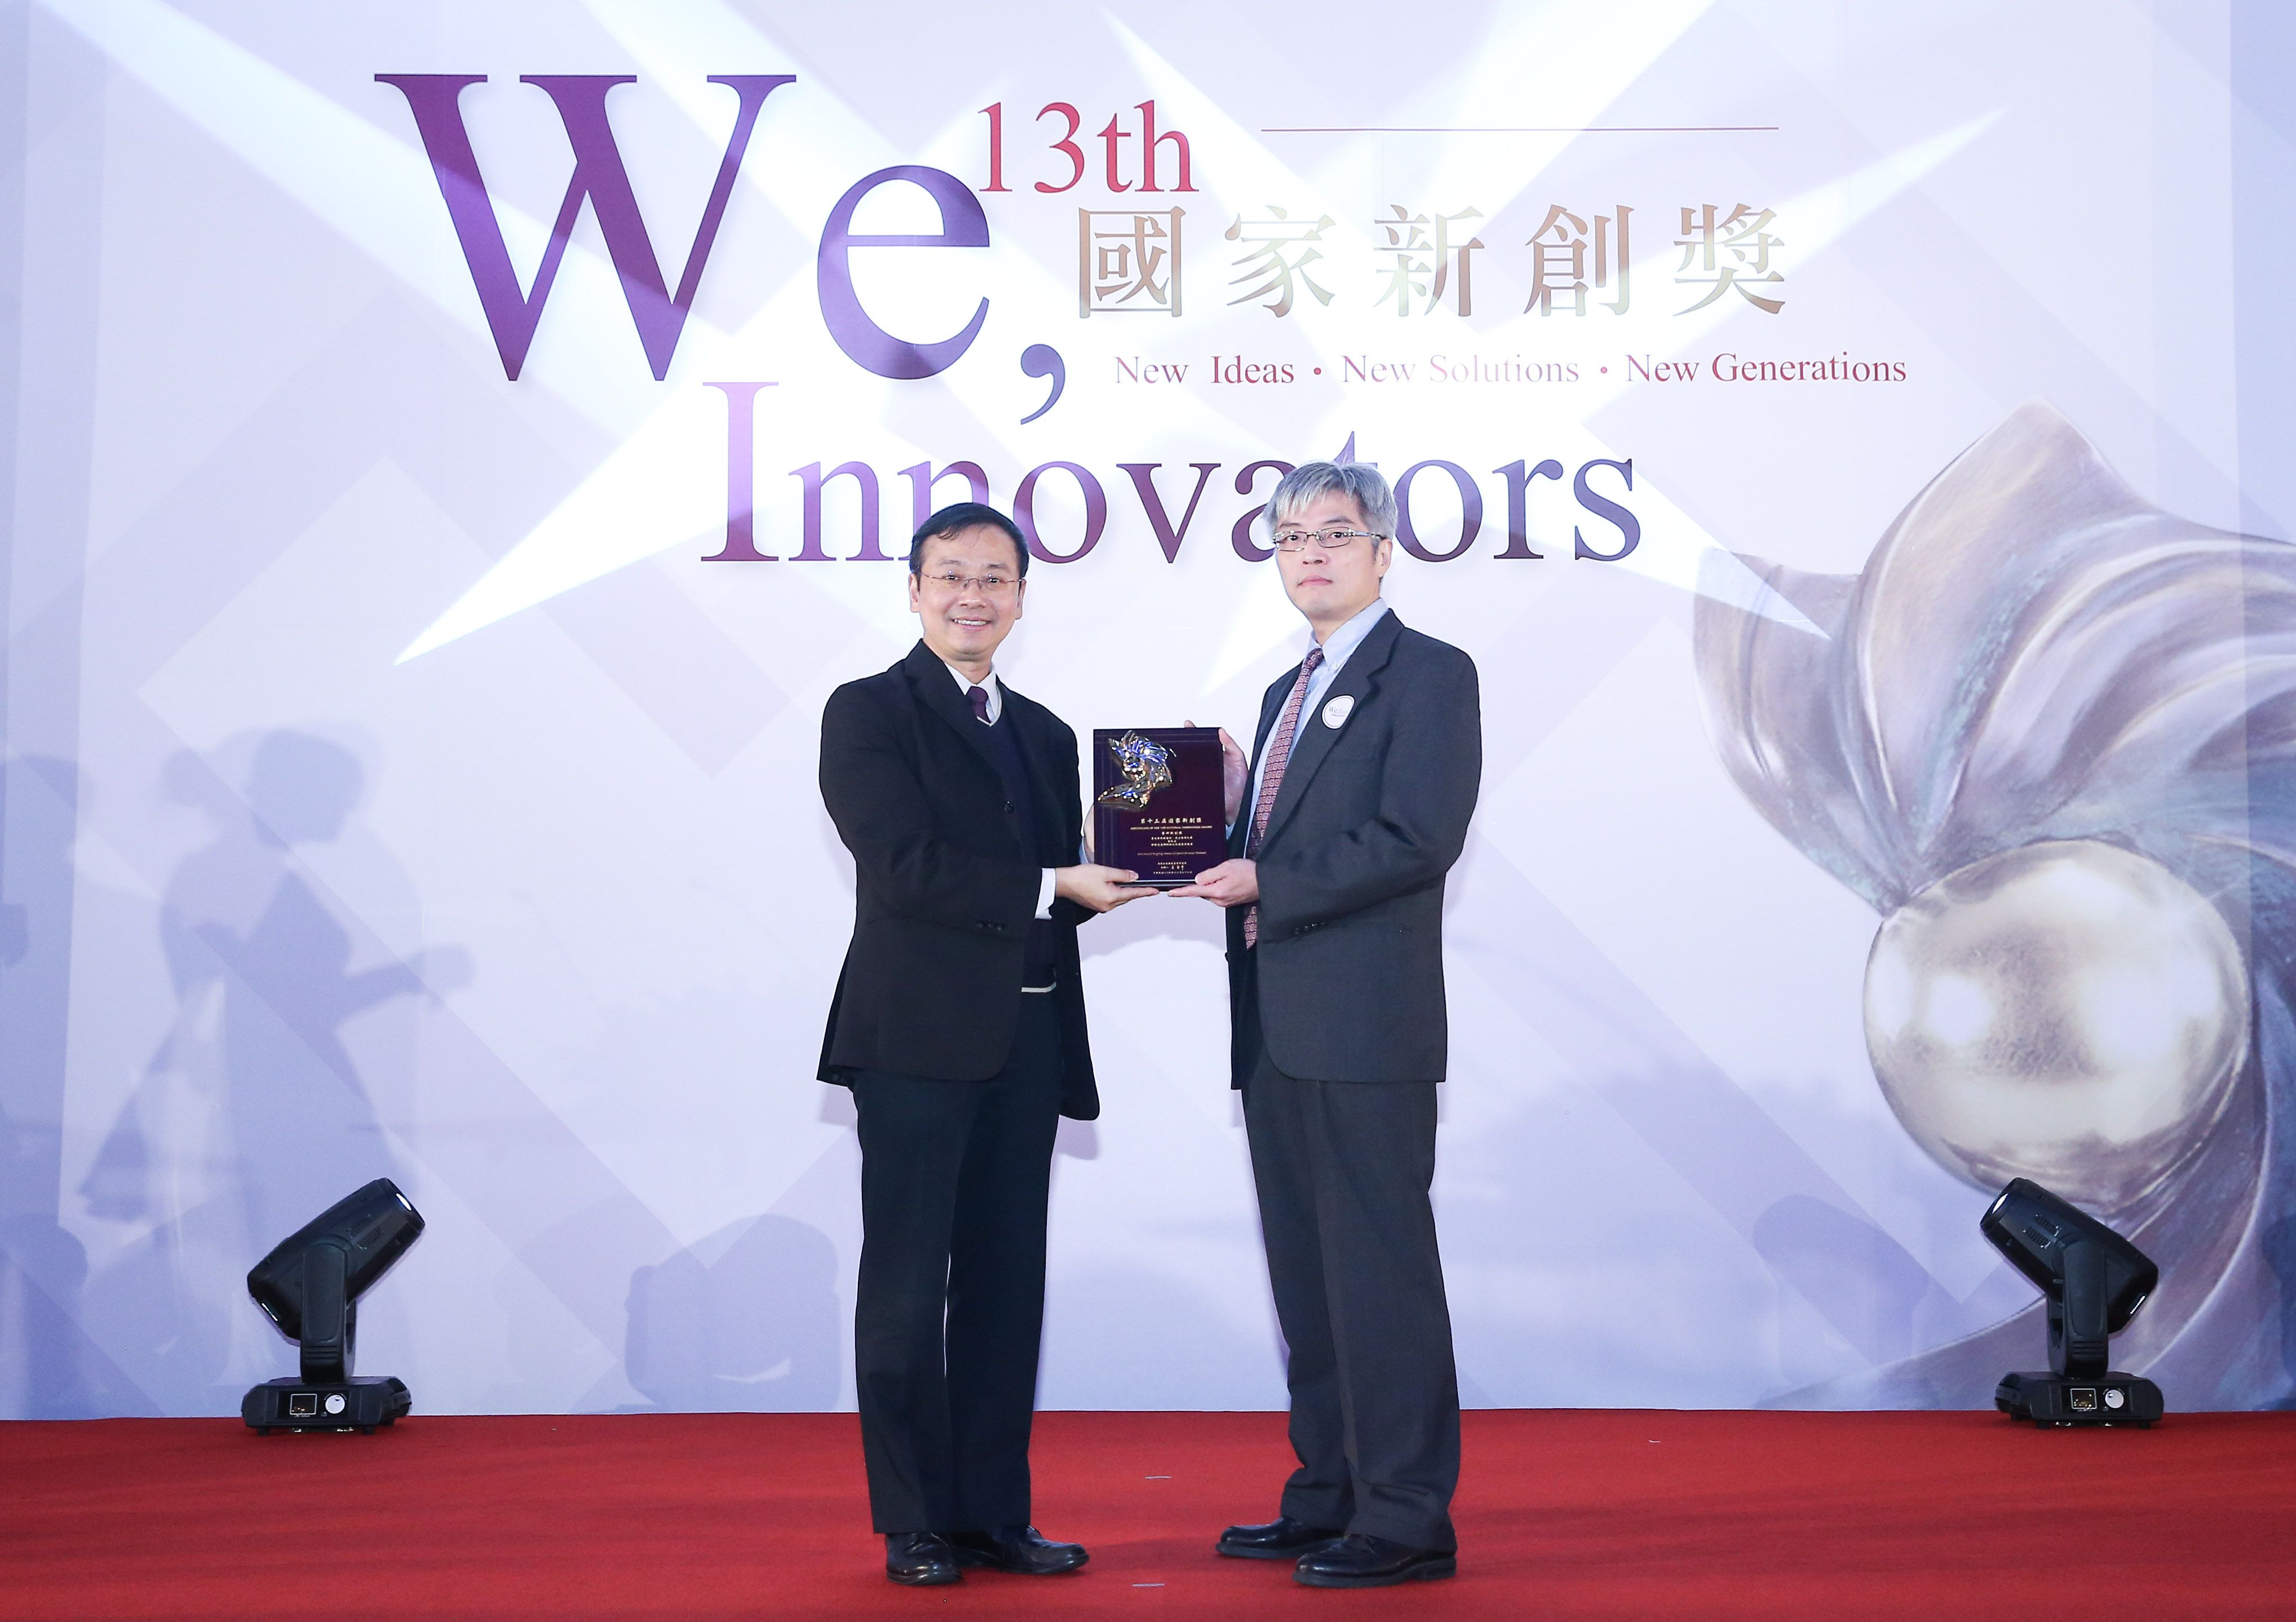 Assoc. Prof. Keng-Li Lan won the 13th Innovators Awards